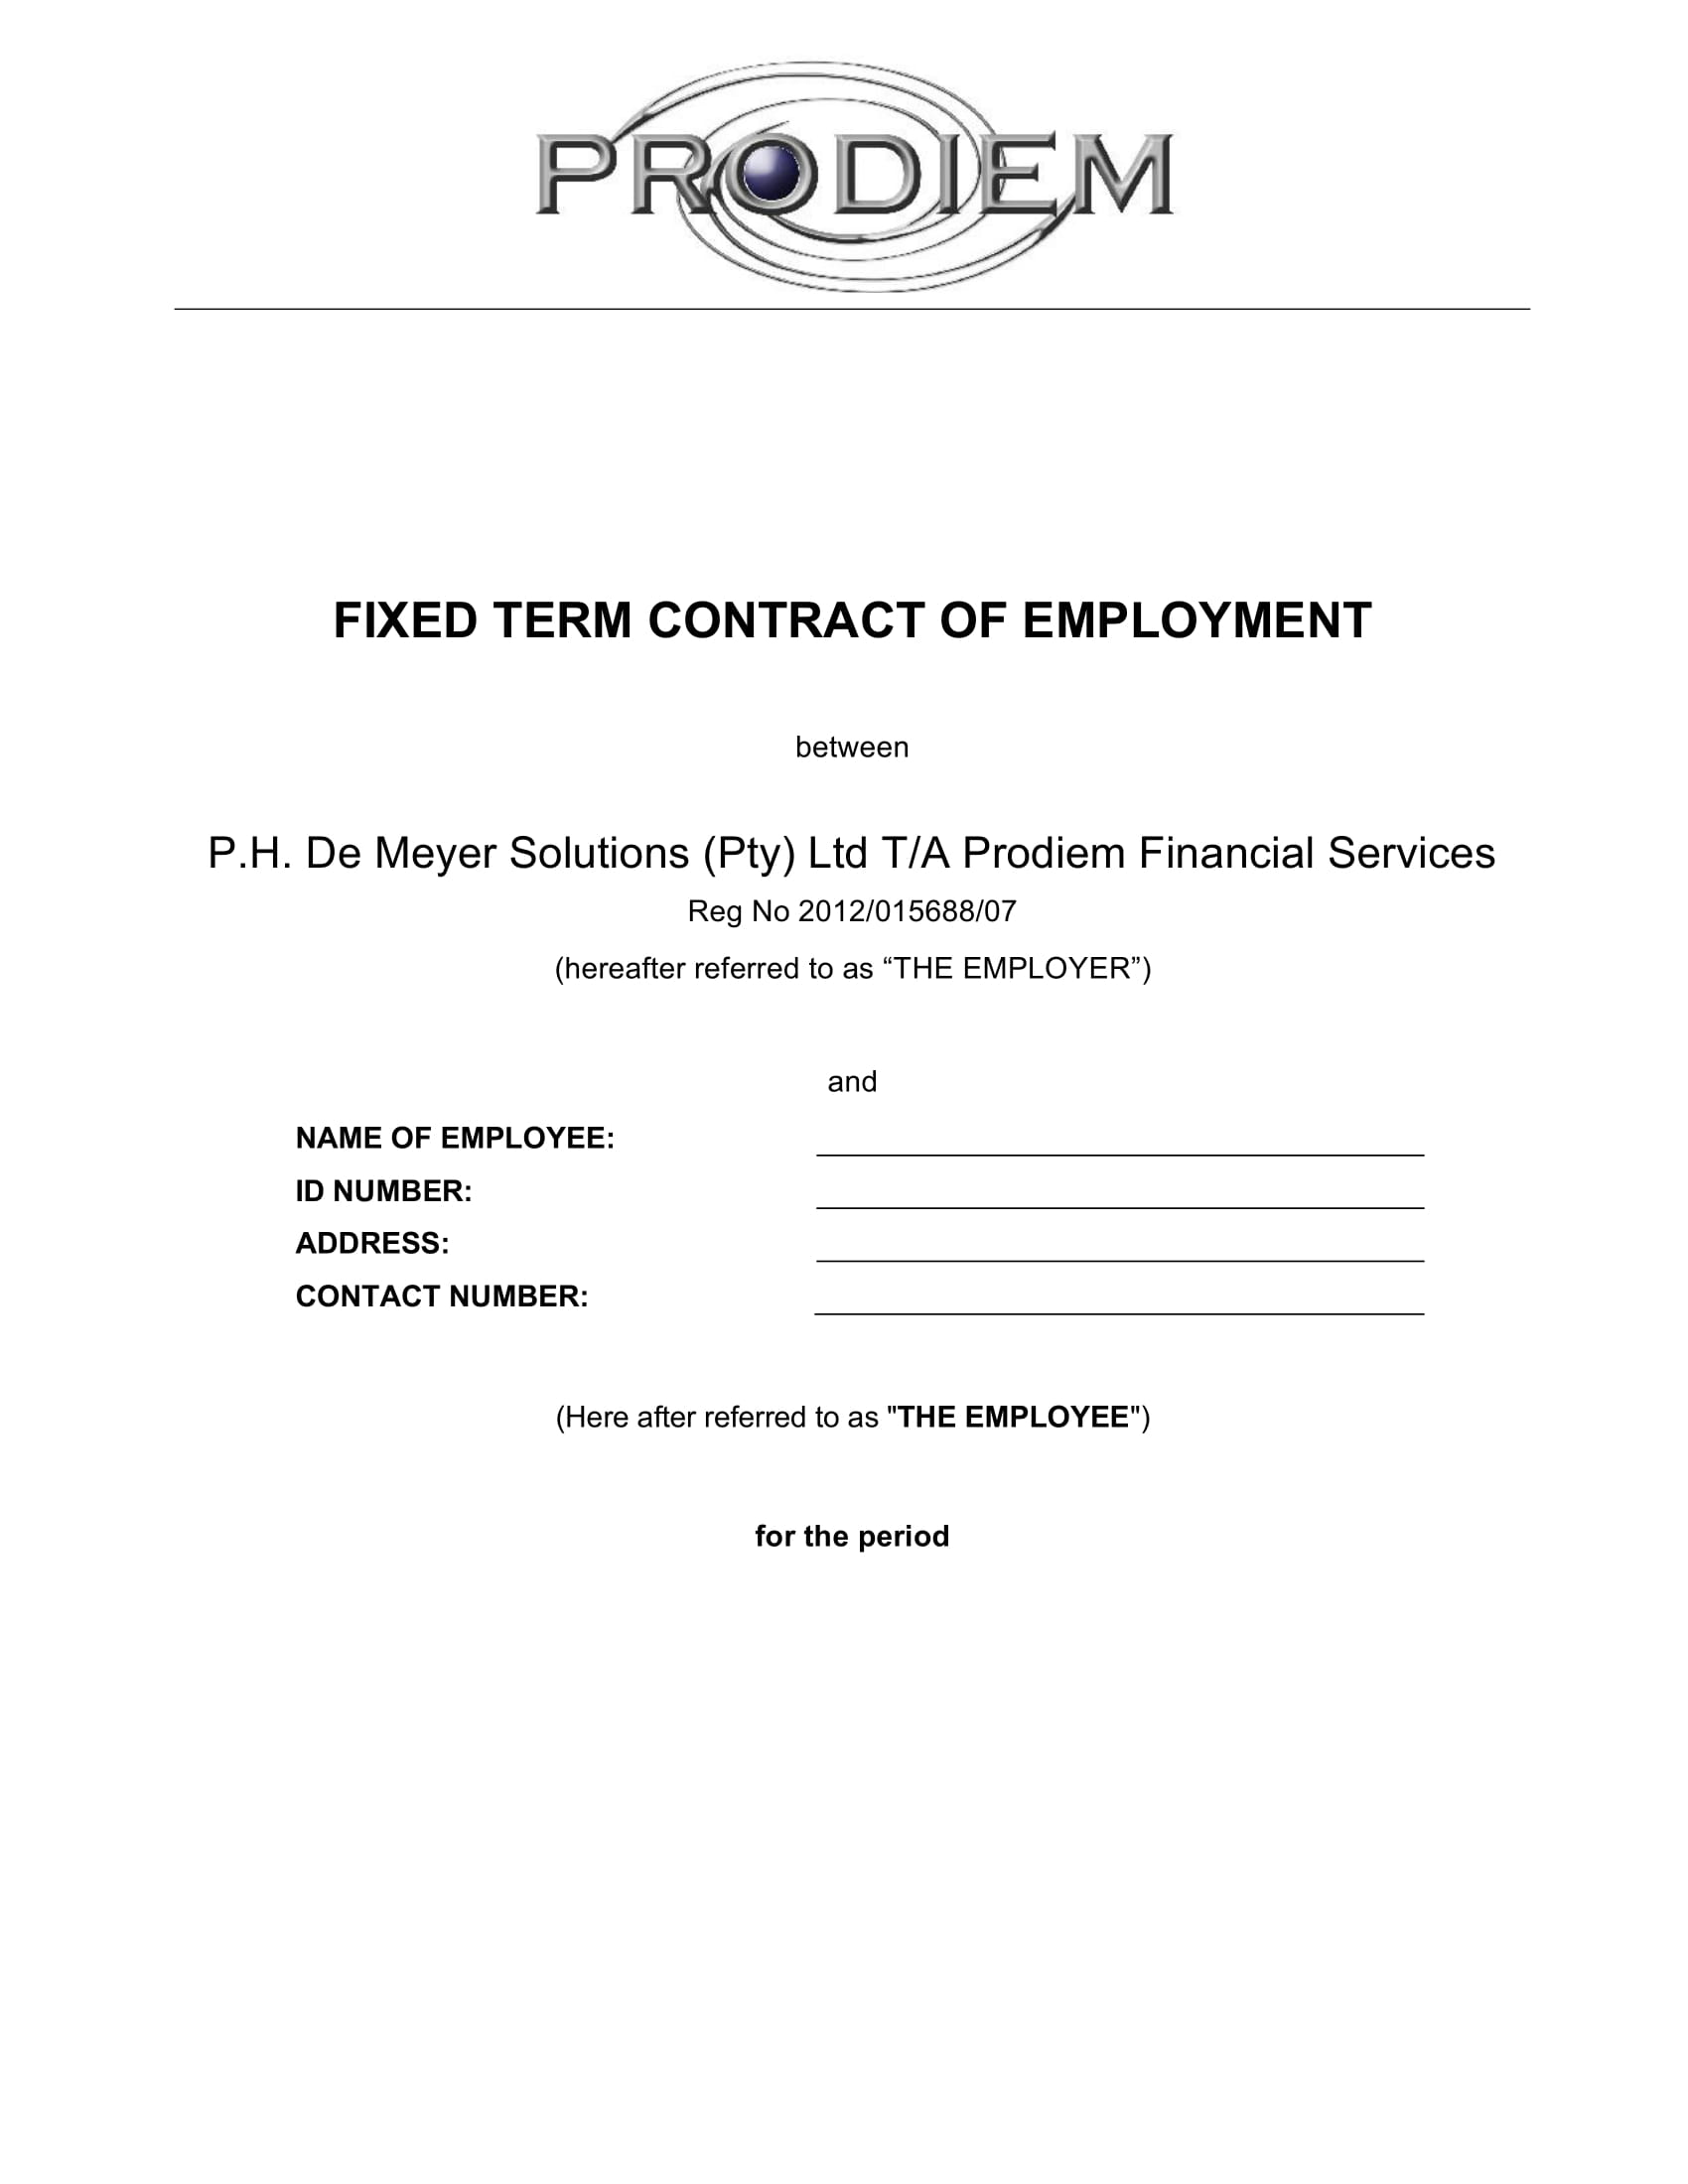 fixed term contract of employment1